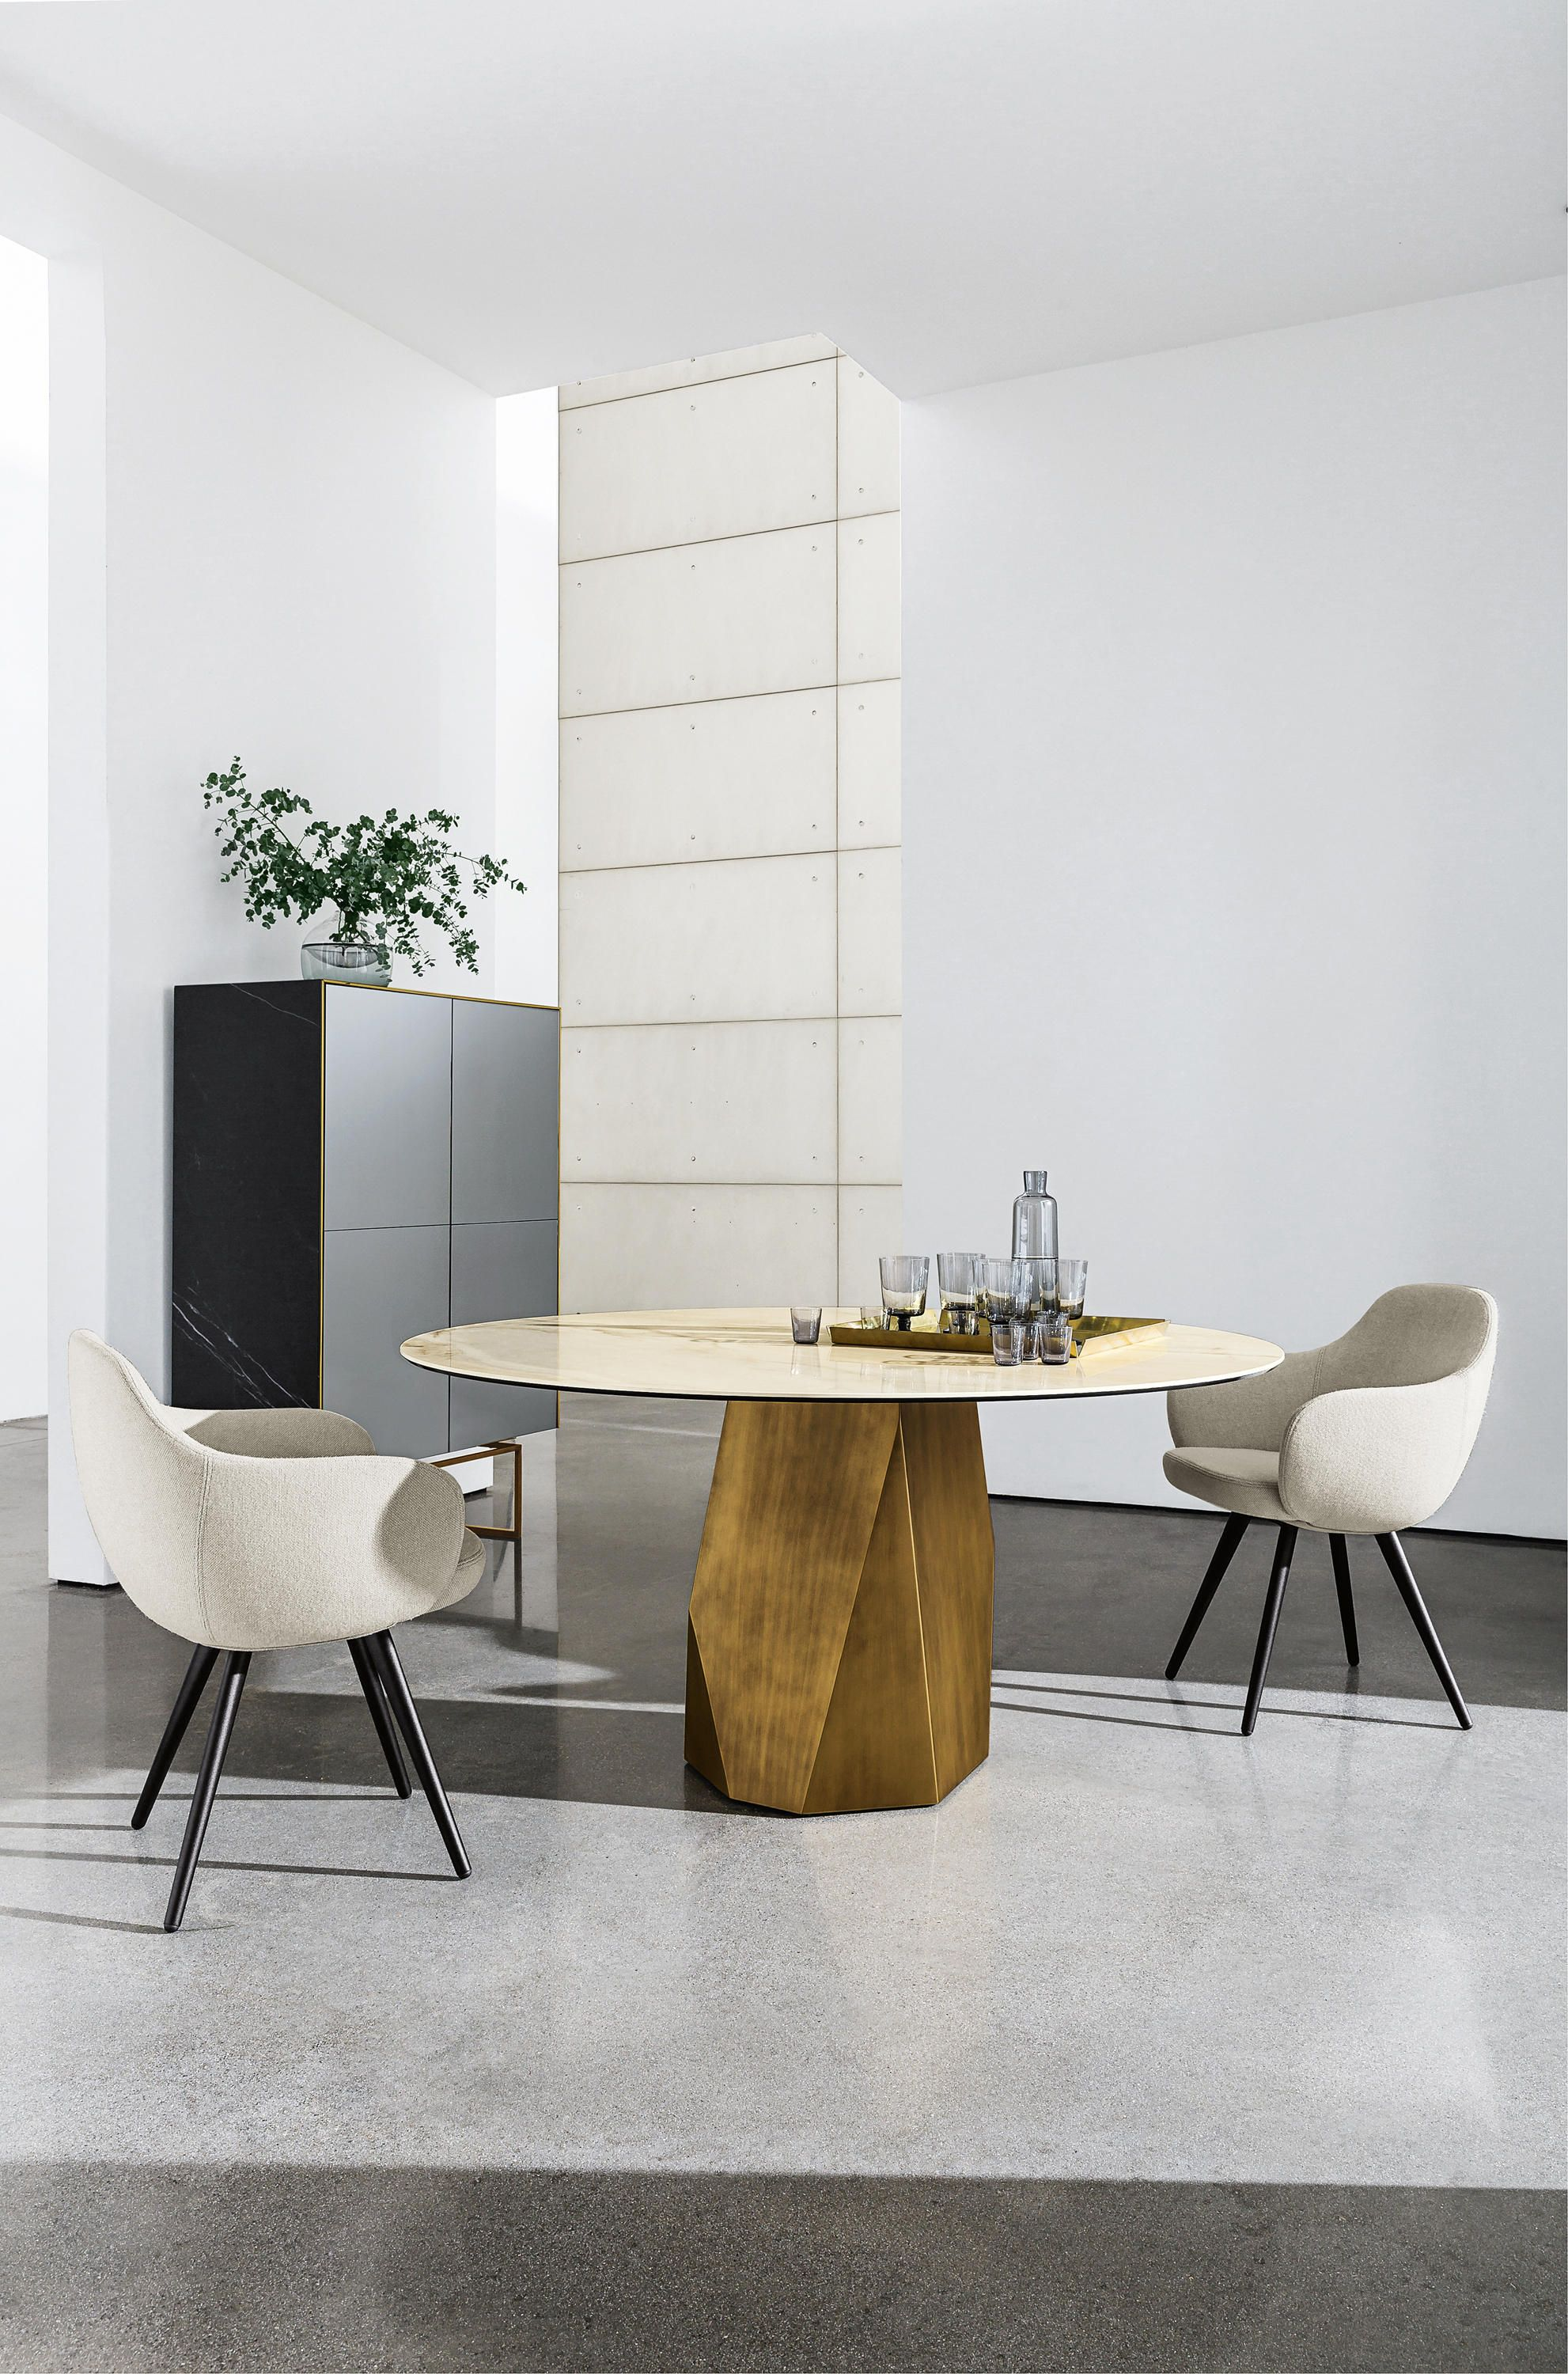 5bfb8ebbc9cf DEOD CERAMIC WOOD - Designer Dining tables from Sovet  architonic   nowonarchitonic  interior  design  furniture  table  wood  ceramic  dining